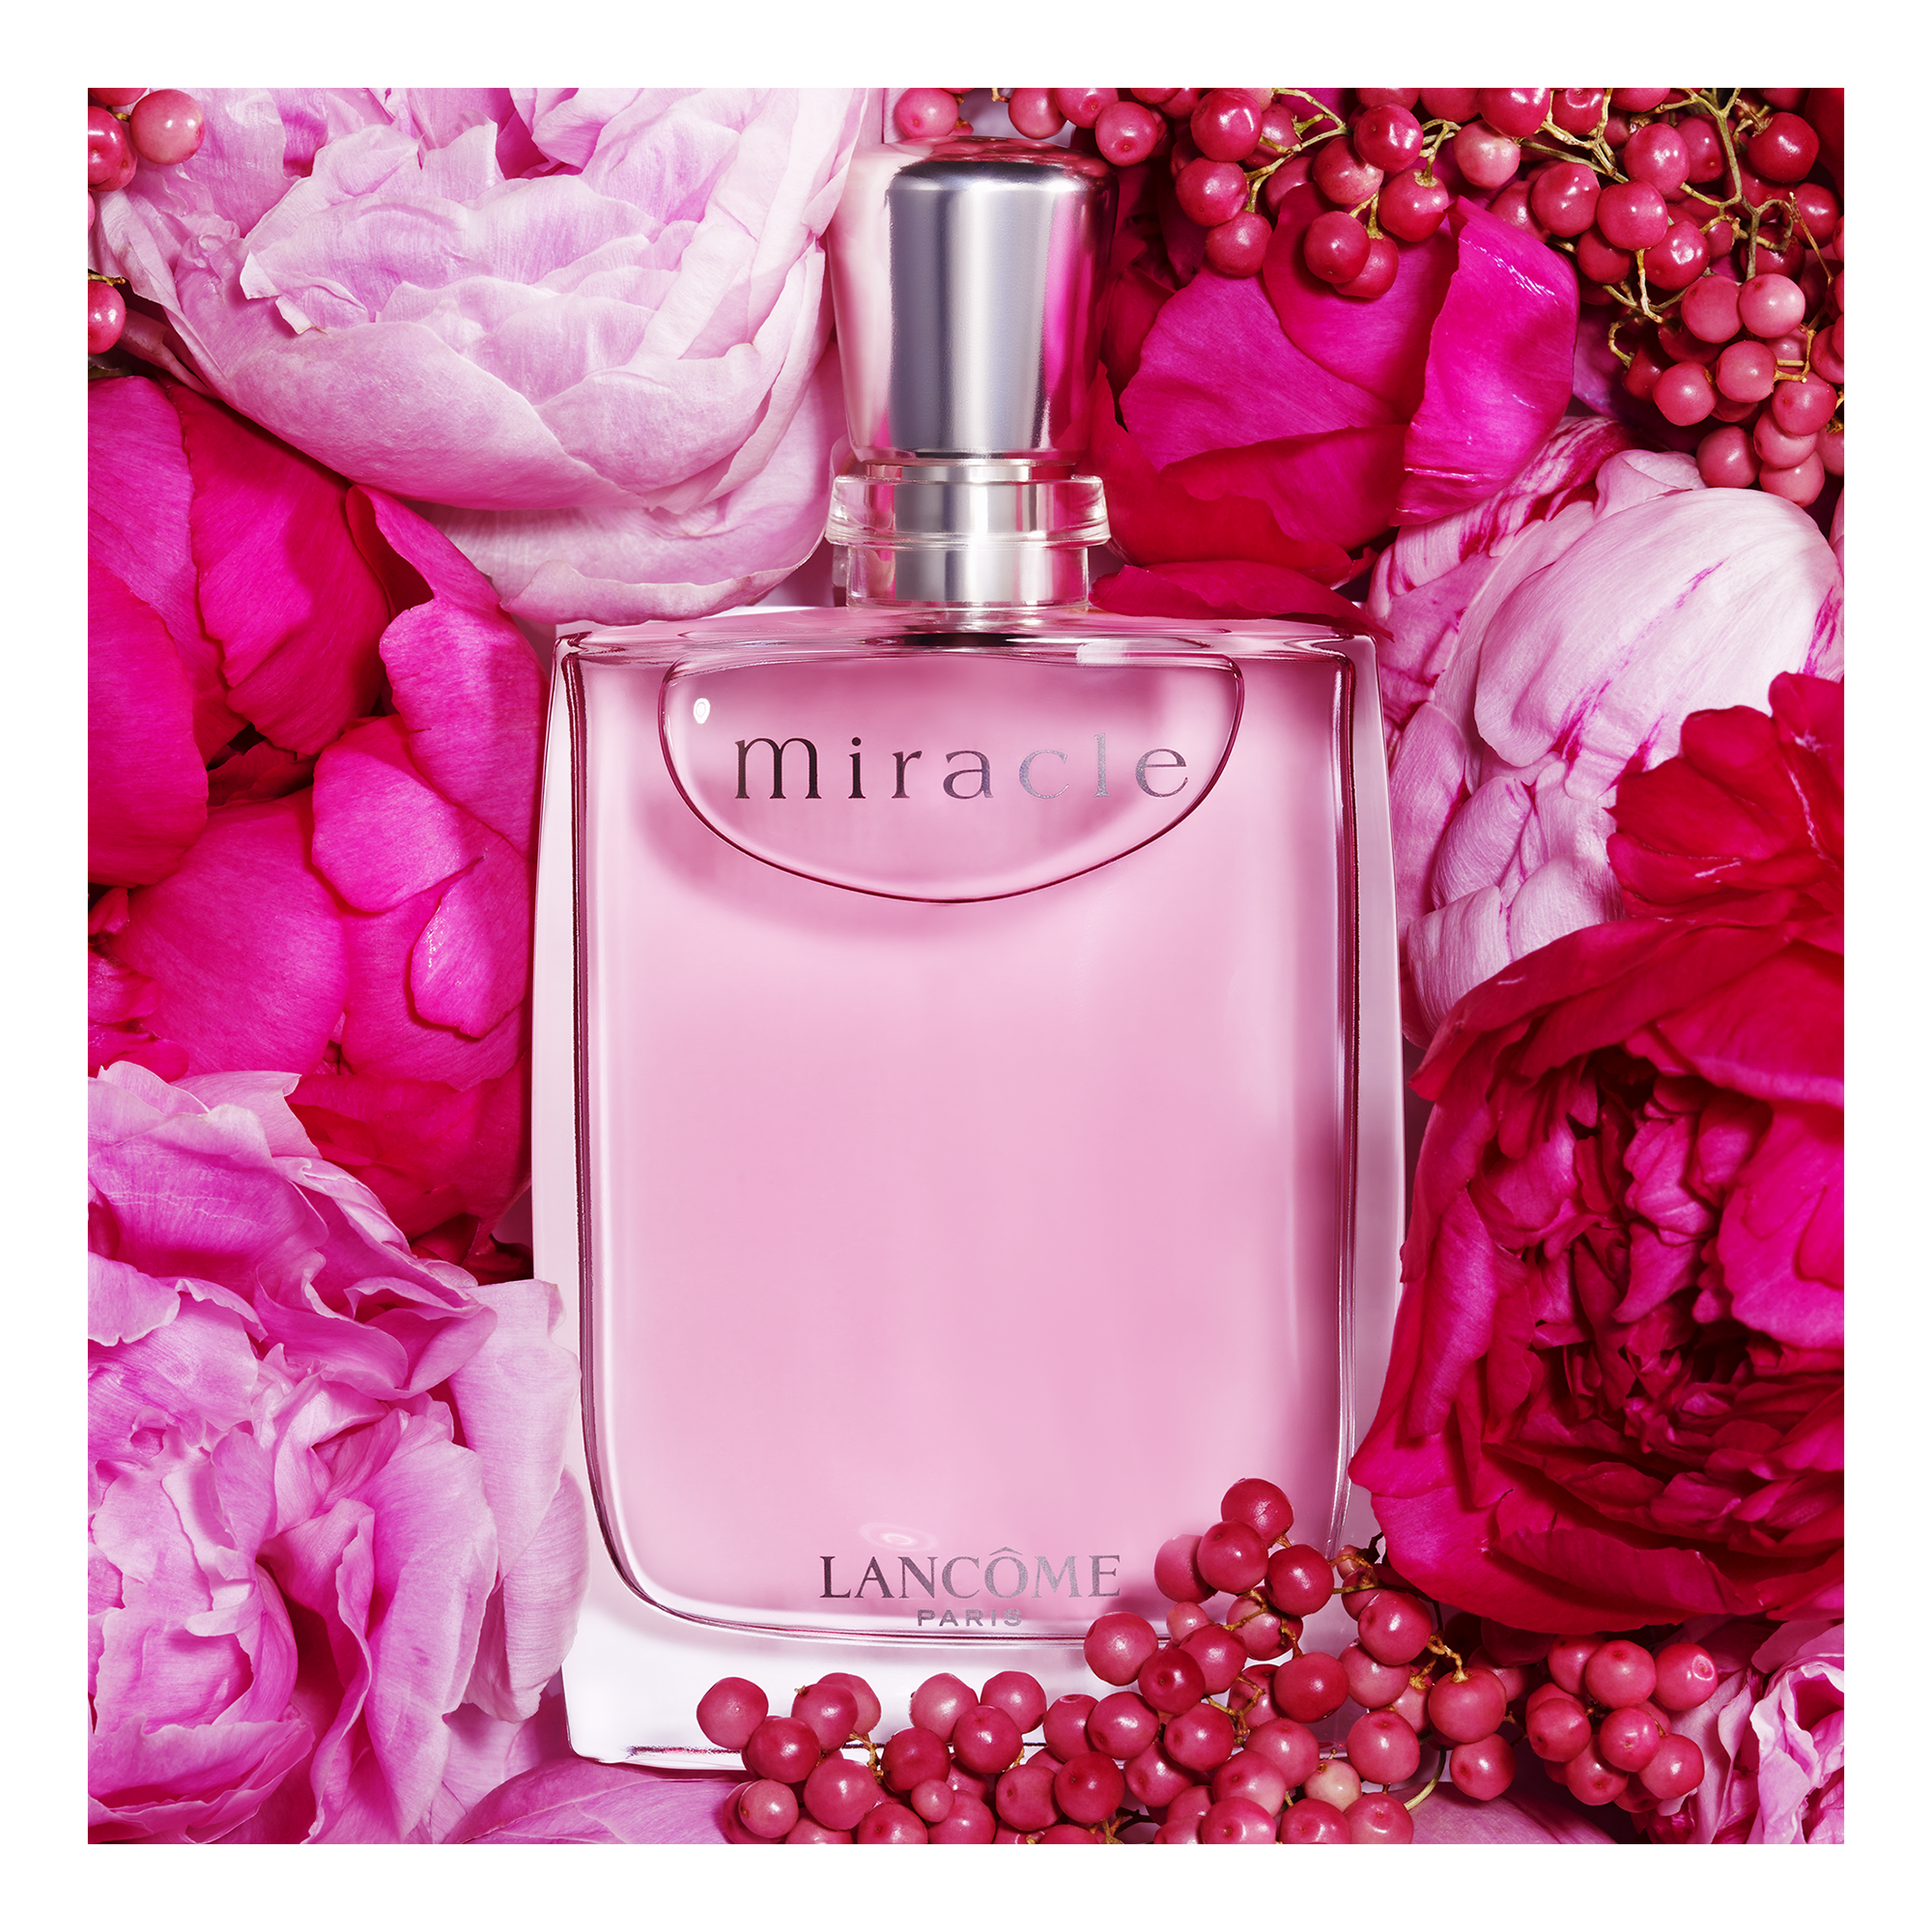 Lancome Lancome Miracle Parfum Lancome Miracle Parfum Miracle 2WEHD9I